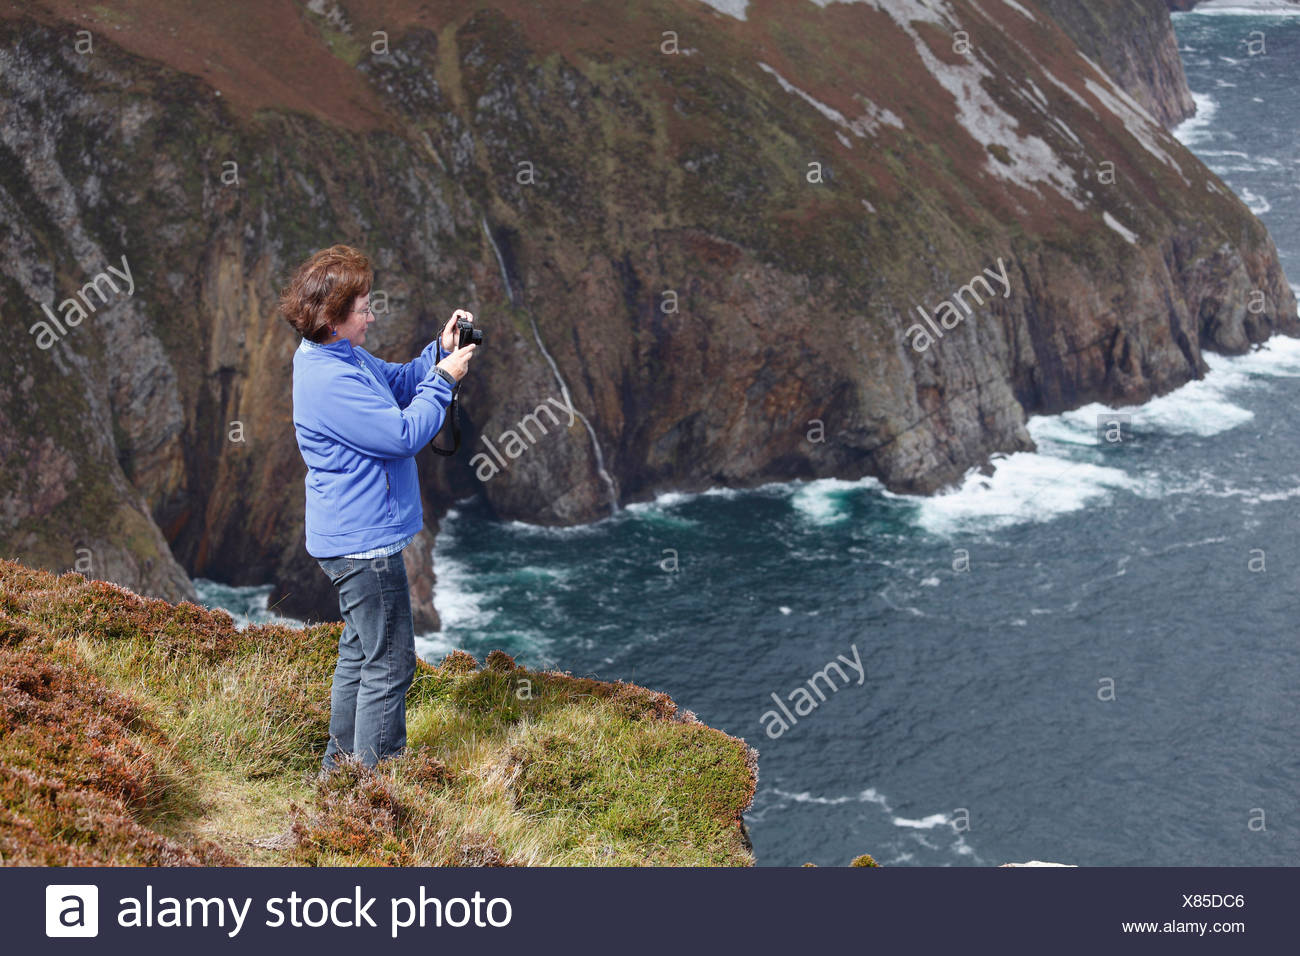 Woman taking pictures with a digital compact camera, at the cliffs of Slieve League, County Donegal, Ireland, Europe - Stock Image